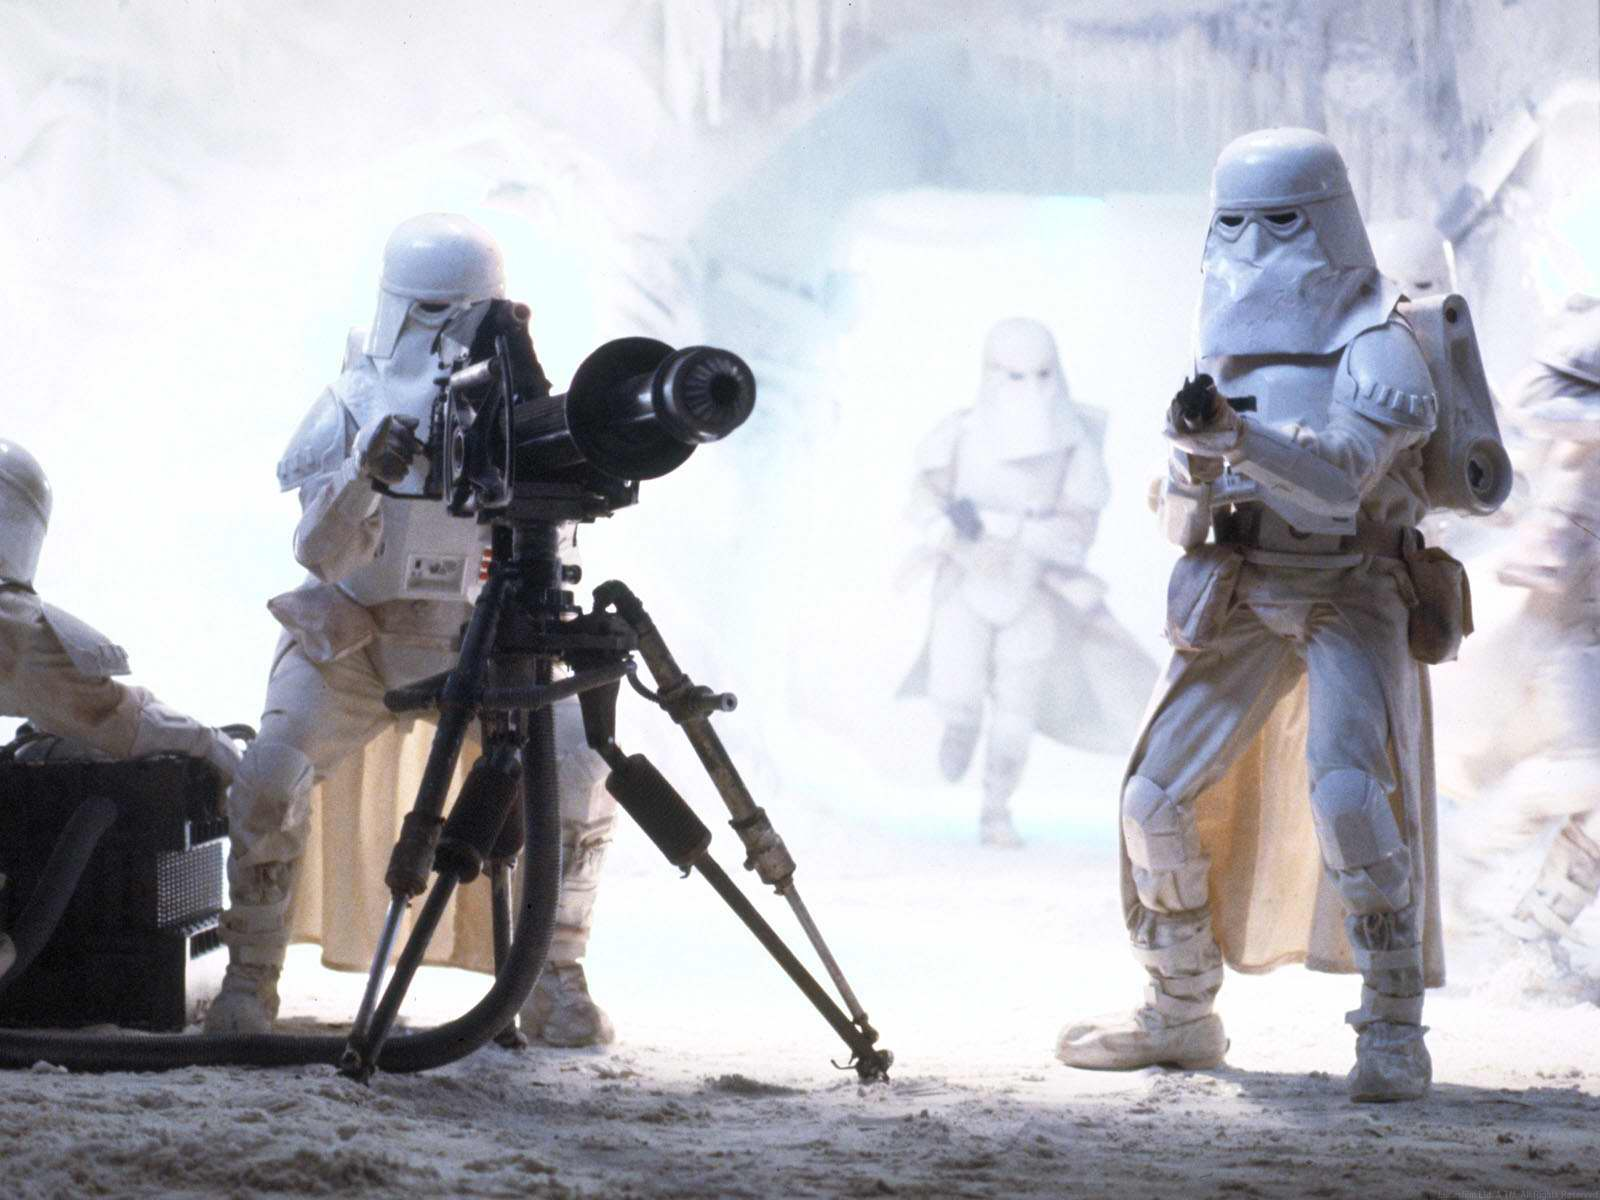 http://img2.wikia.nocookie.net/__cb20070510183745/starwars/images/a/a9/Imperial_Snowtroopers.jpg